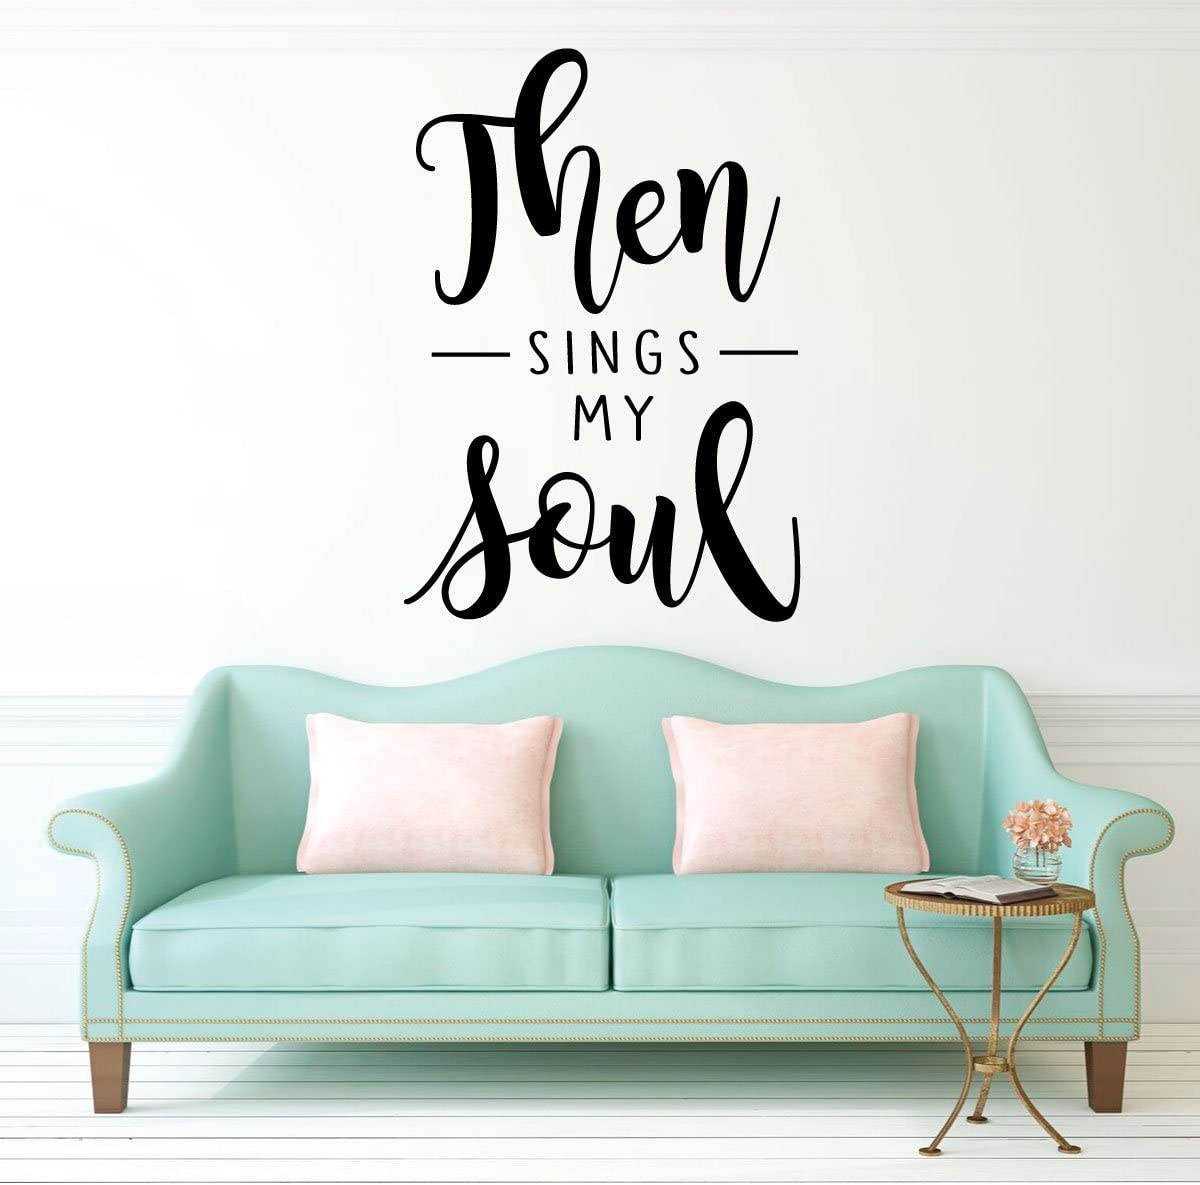 Christian Hymn Wall Decal Psalms | Then Sings My Soul | Wall Decal for Home Decoration | Vinyl Quote And Religious Decor Or Church Decoration | Bedroom, Family Room or Music Room Wall Decal | Custom Sizes and Colors Match Any Themed Living Space